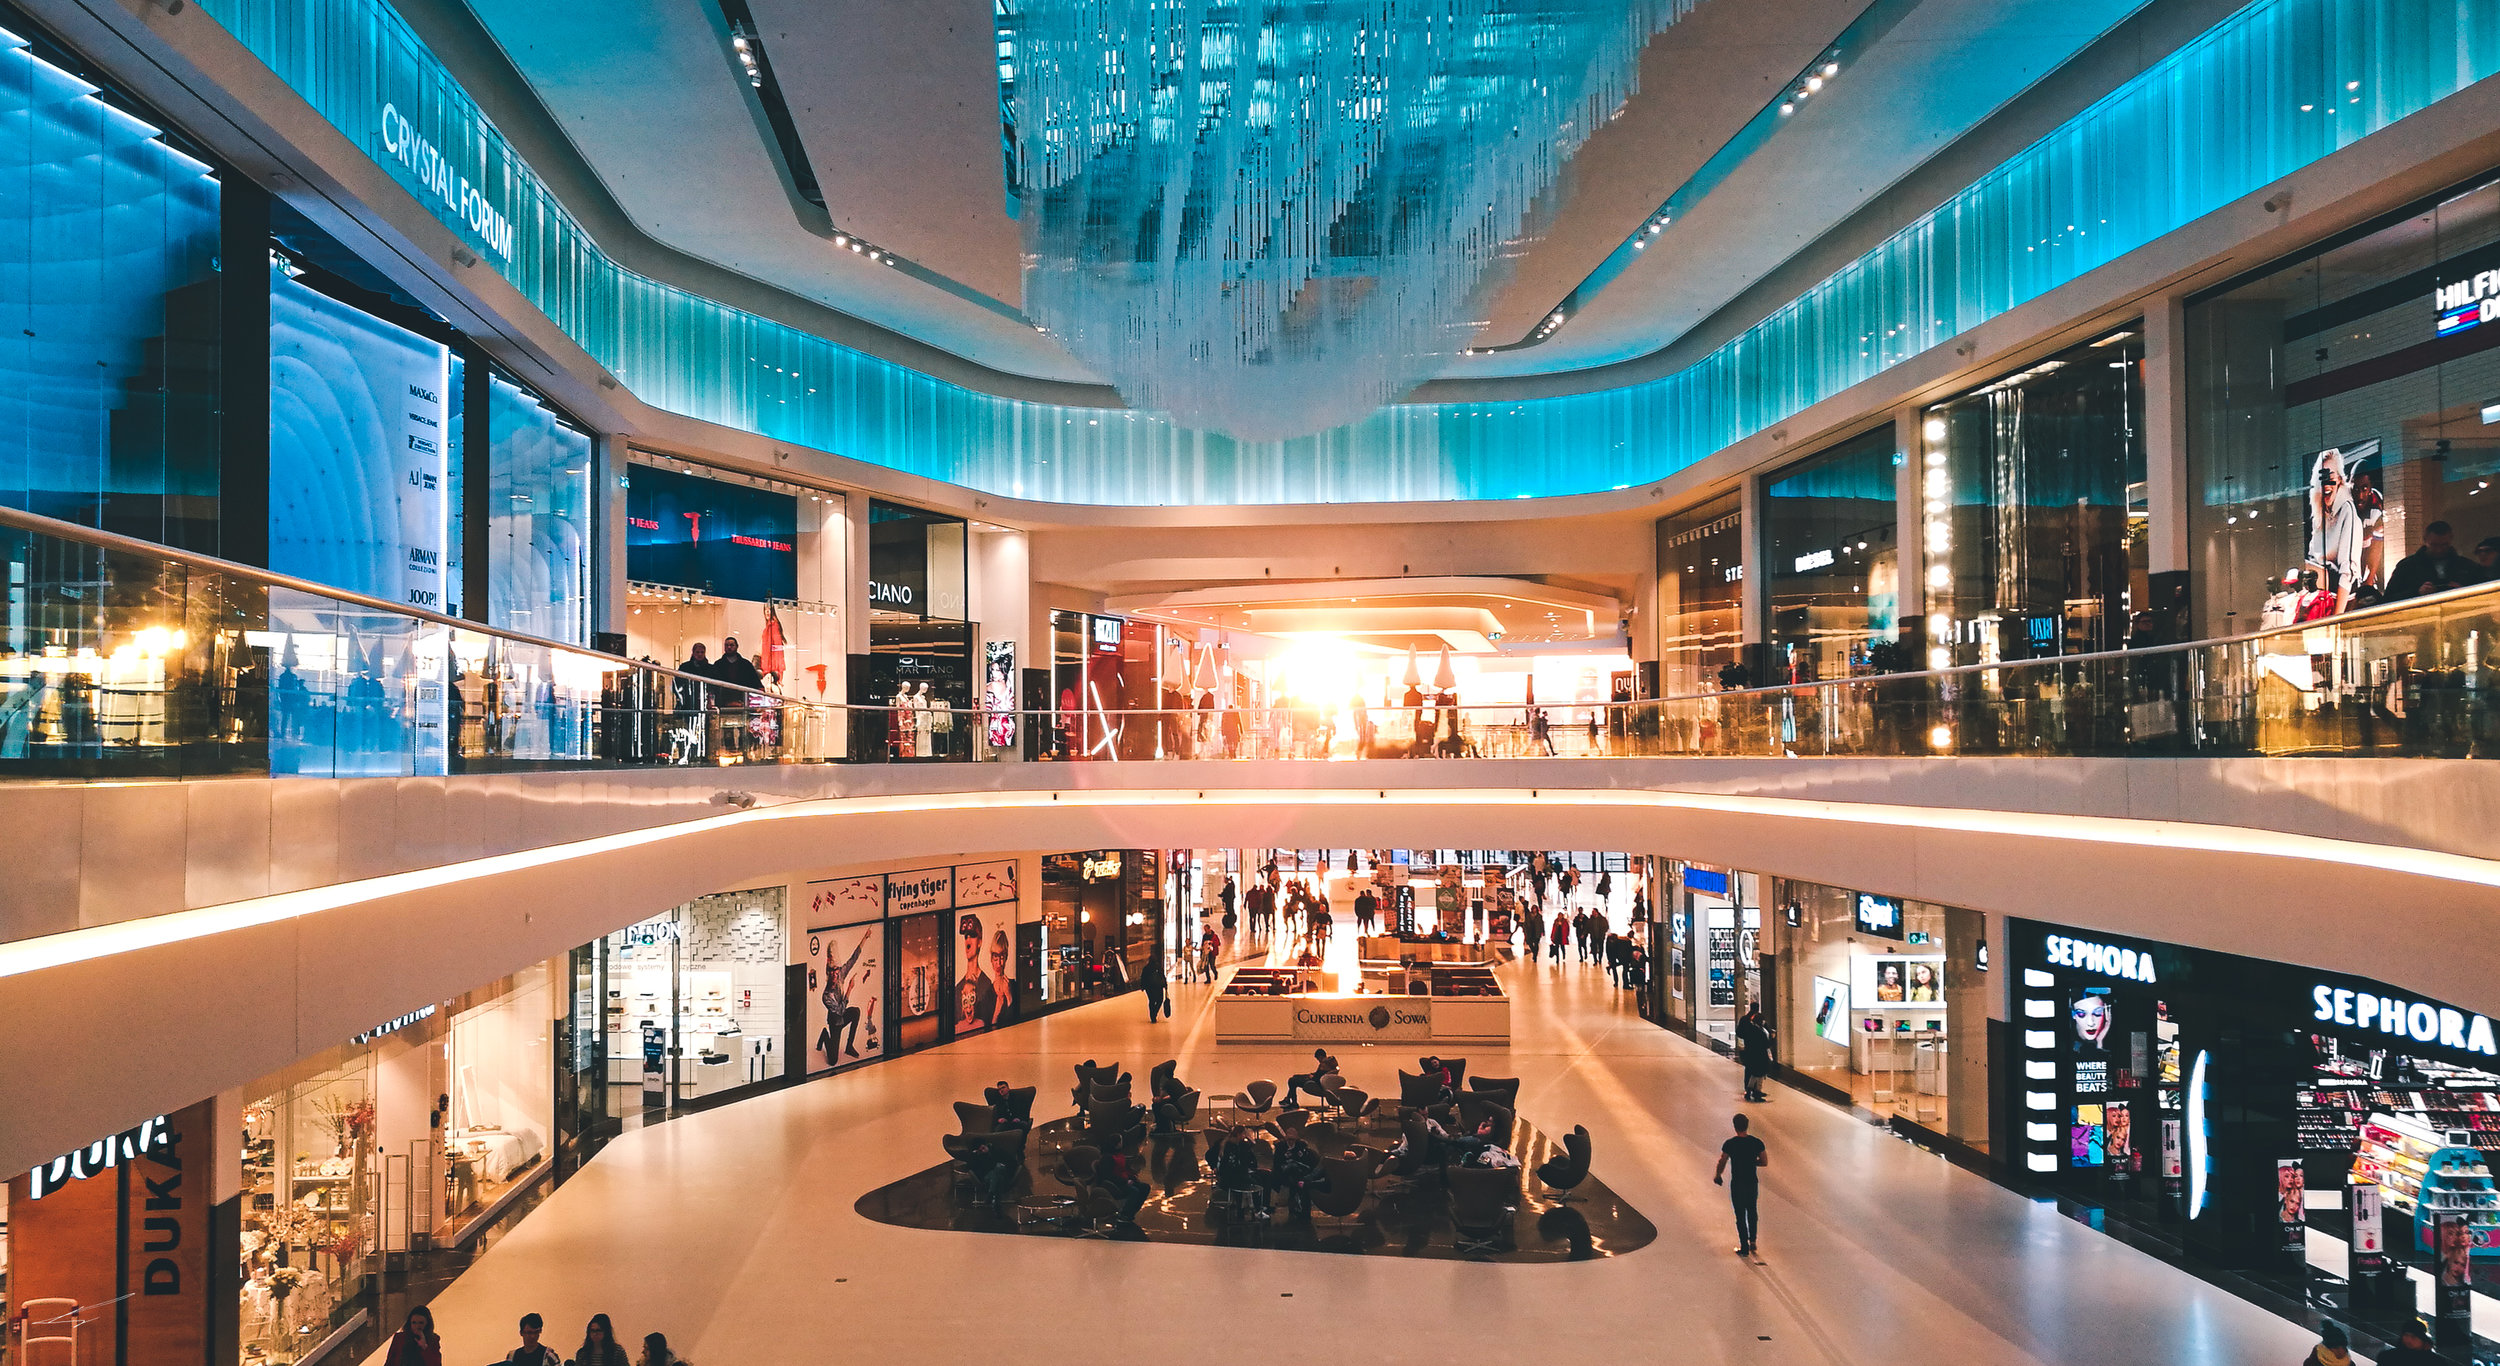 Excessive technology can be counter-productive in new retail, says S.POINT